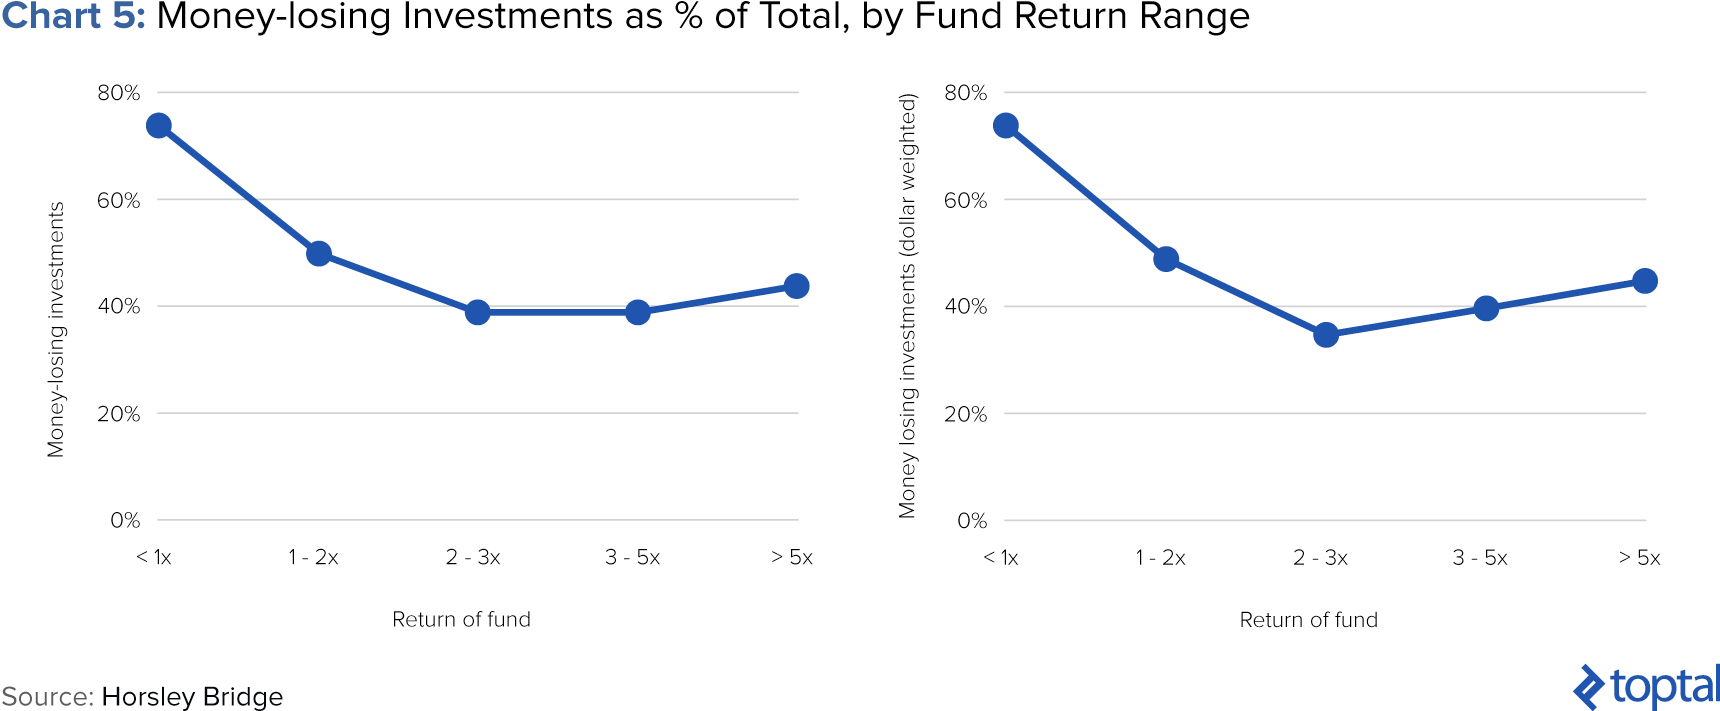 Chart 5: Money-losing Investments as % of Total by Fund Return Range;